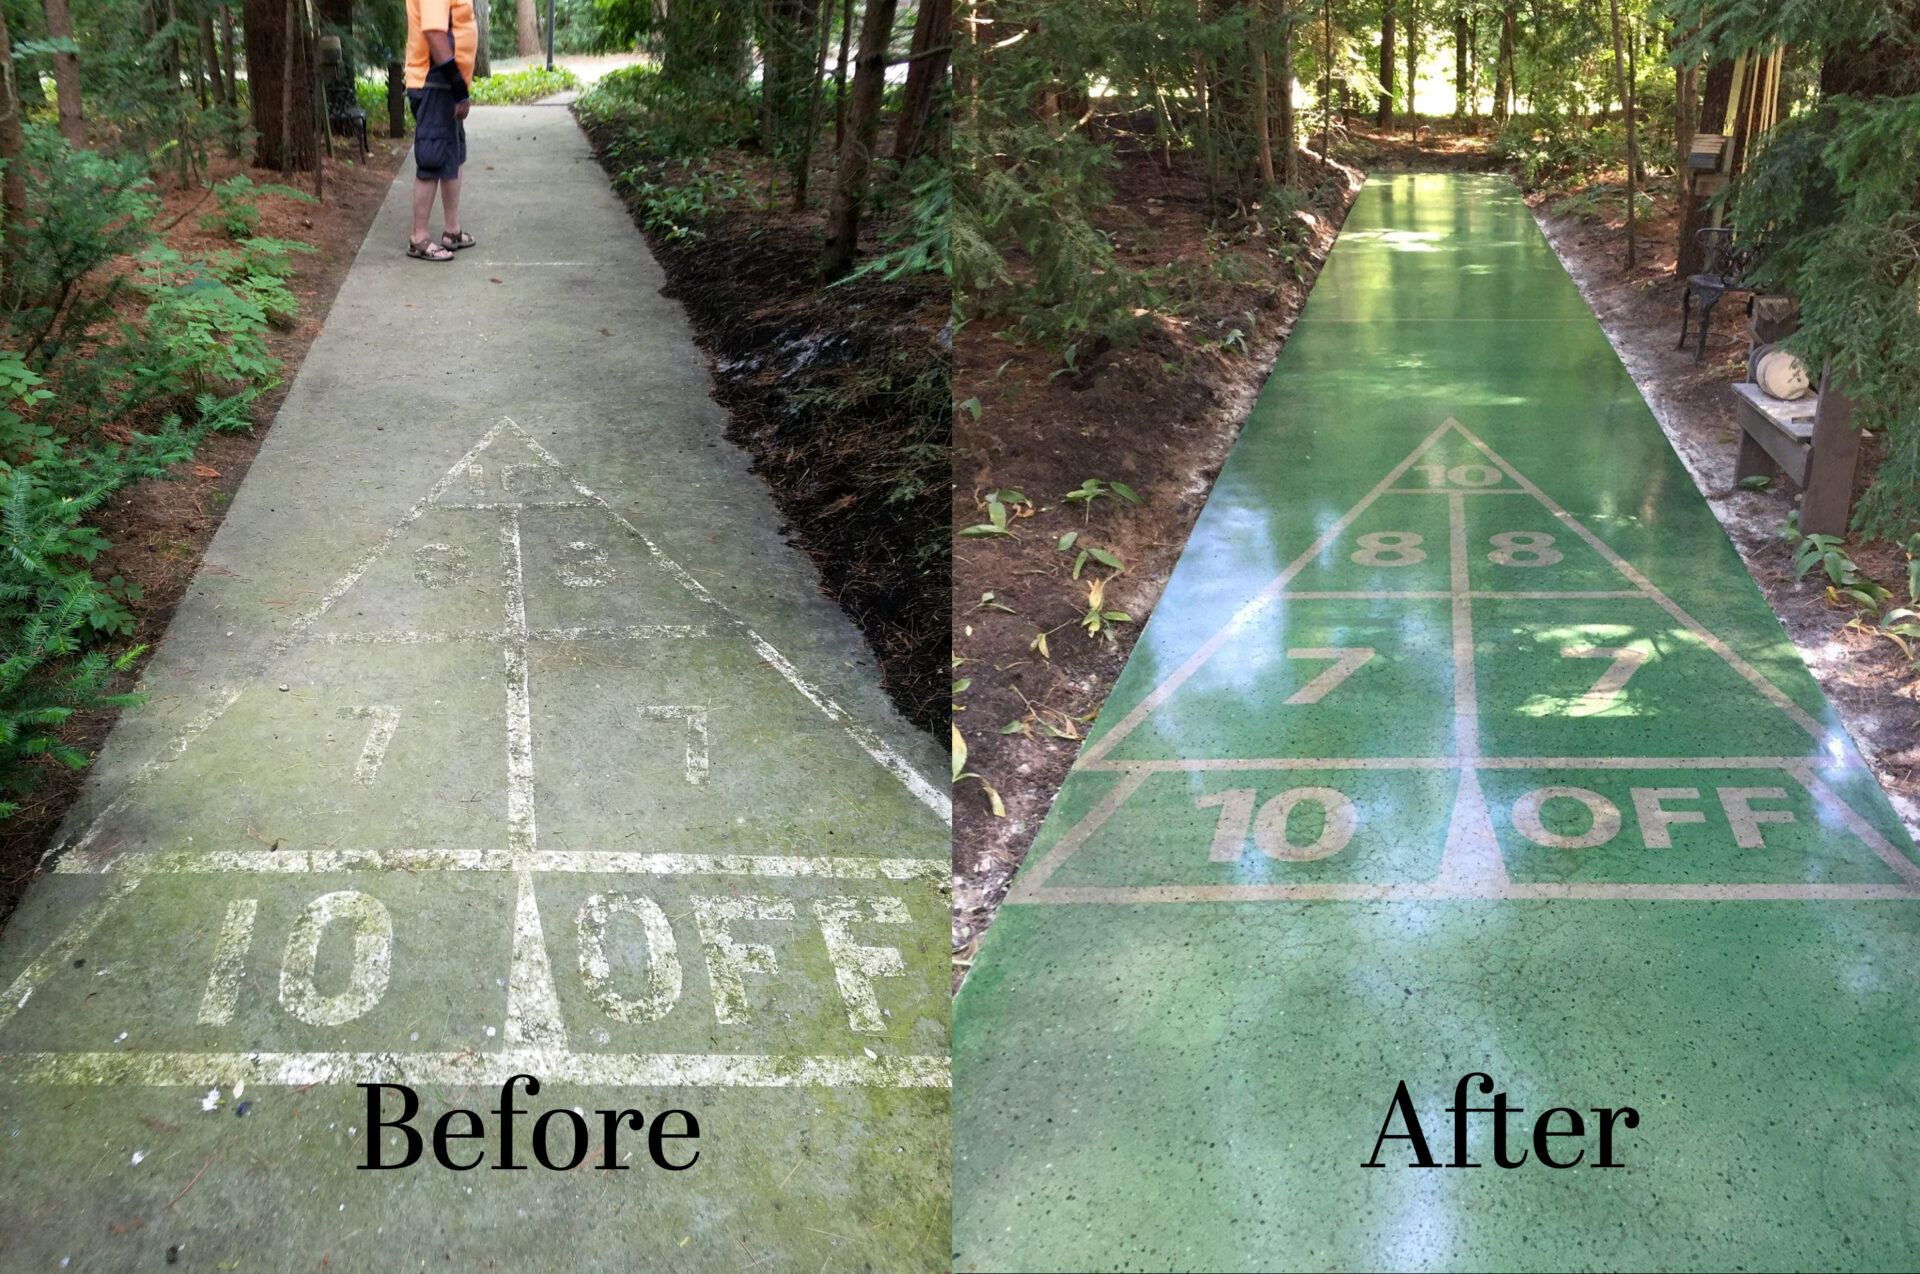 After several years of exposure to the weather and pine trees, this shuffleboard needed some attention. After grinding the court to clean concrete and starting the honing process, a stencil was placed on the slab and stain and densifier were applied. The court was polished to an 800 grit finish, and a guard was applied.